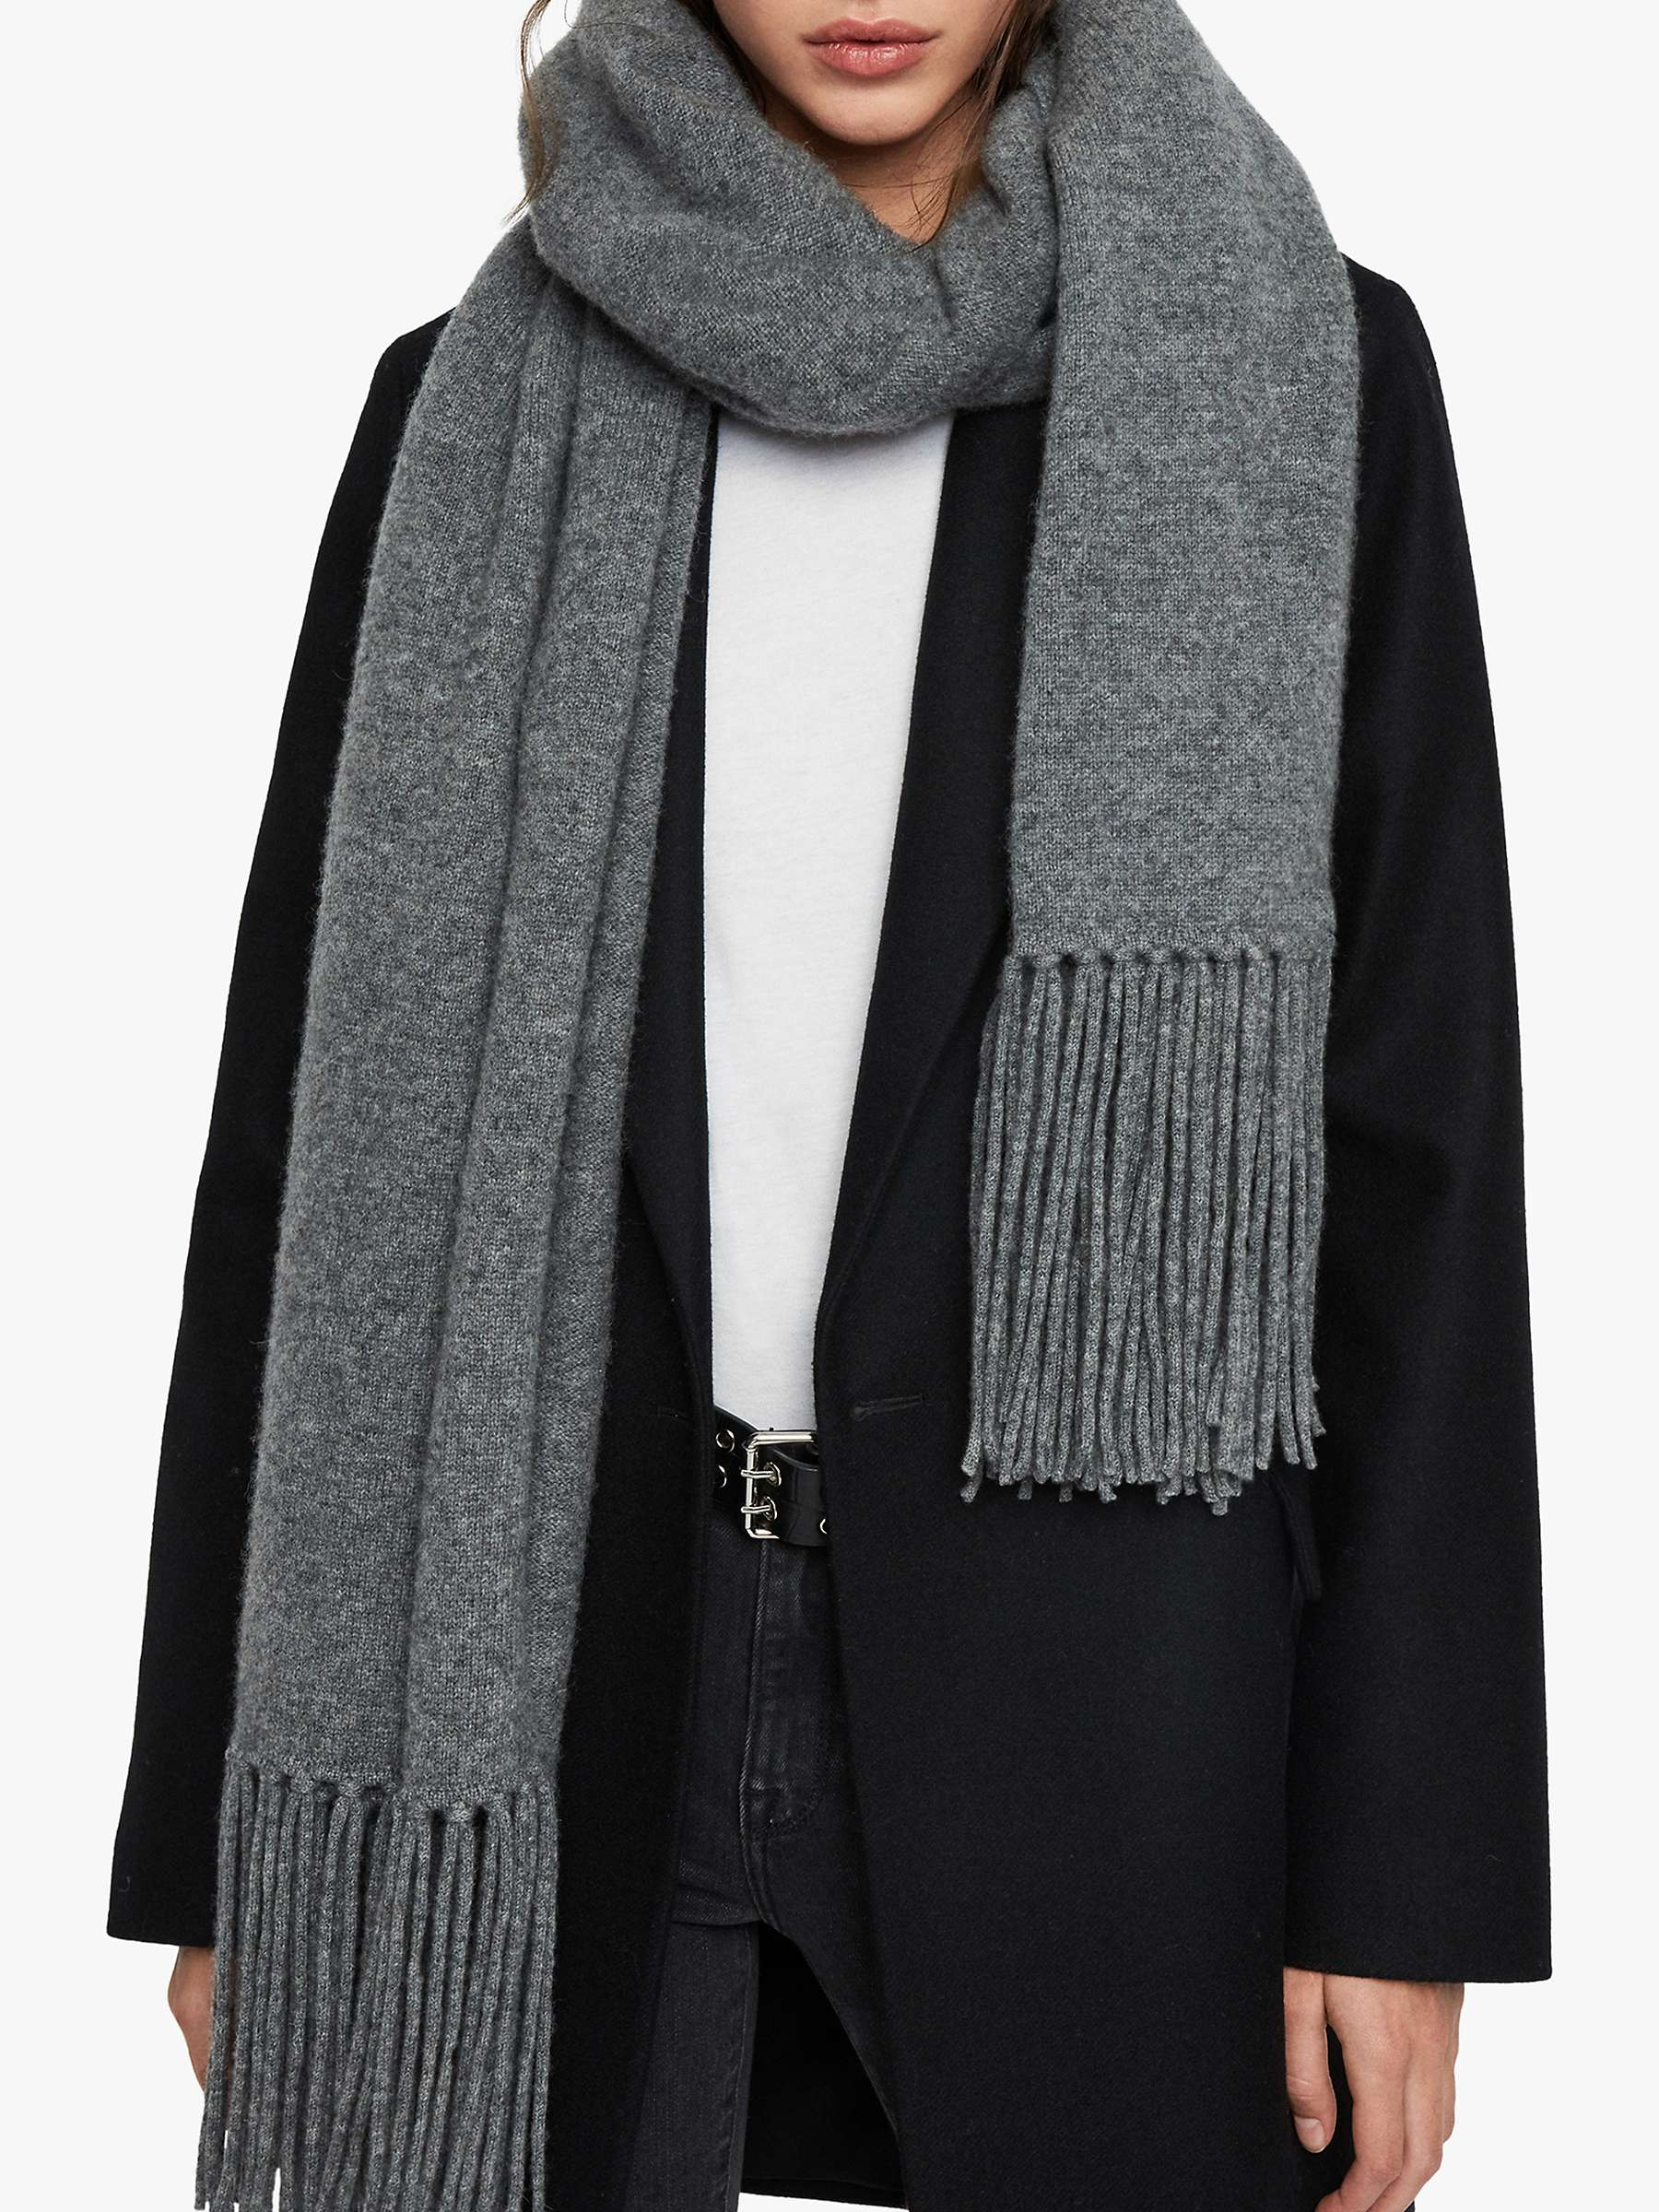 All Saints Boiled Wool Scarf, Grey Marl by Allsaints